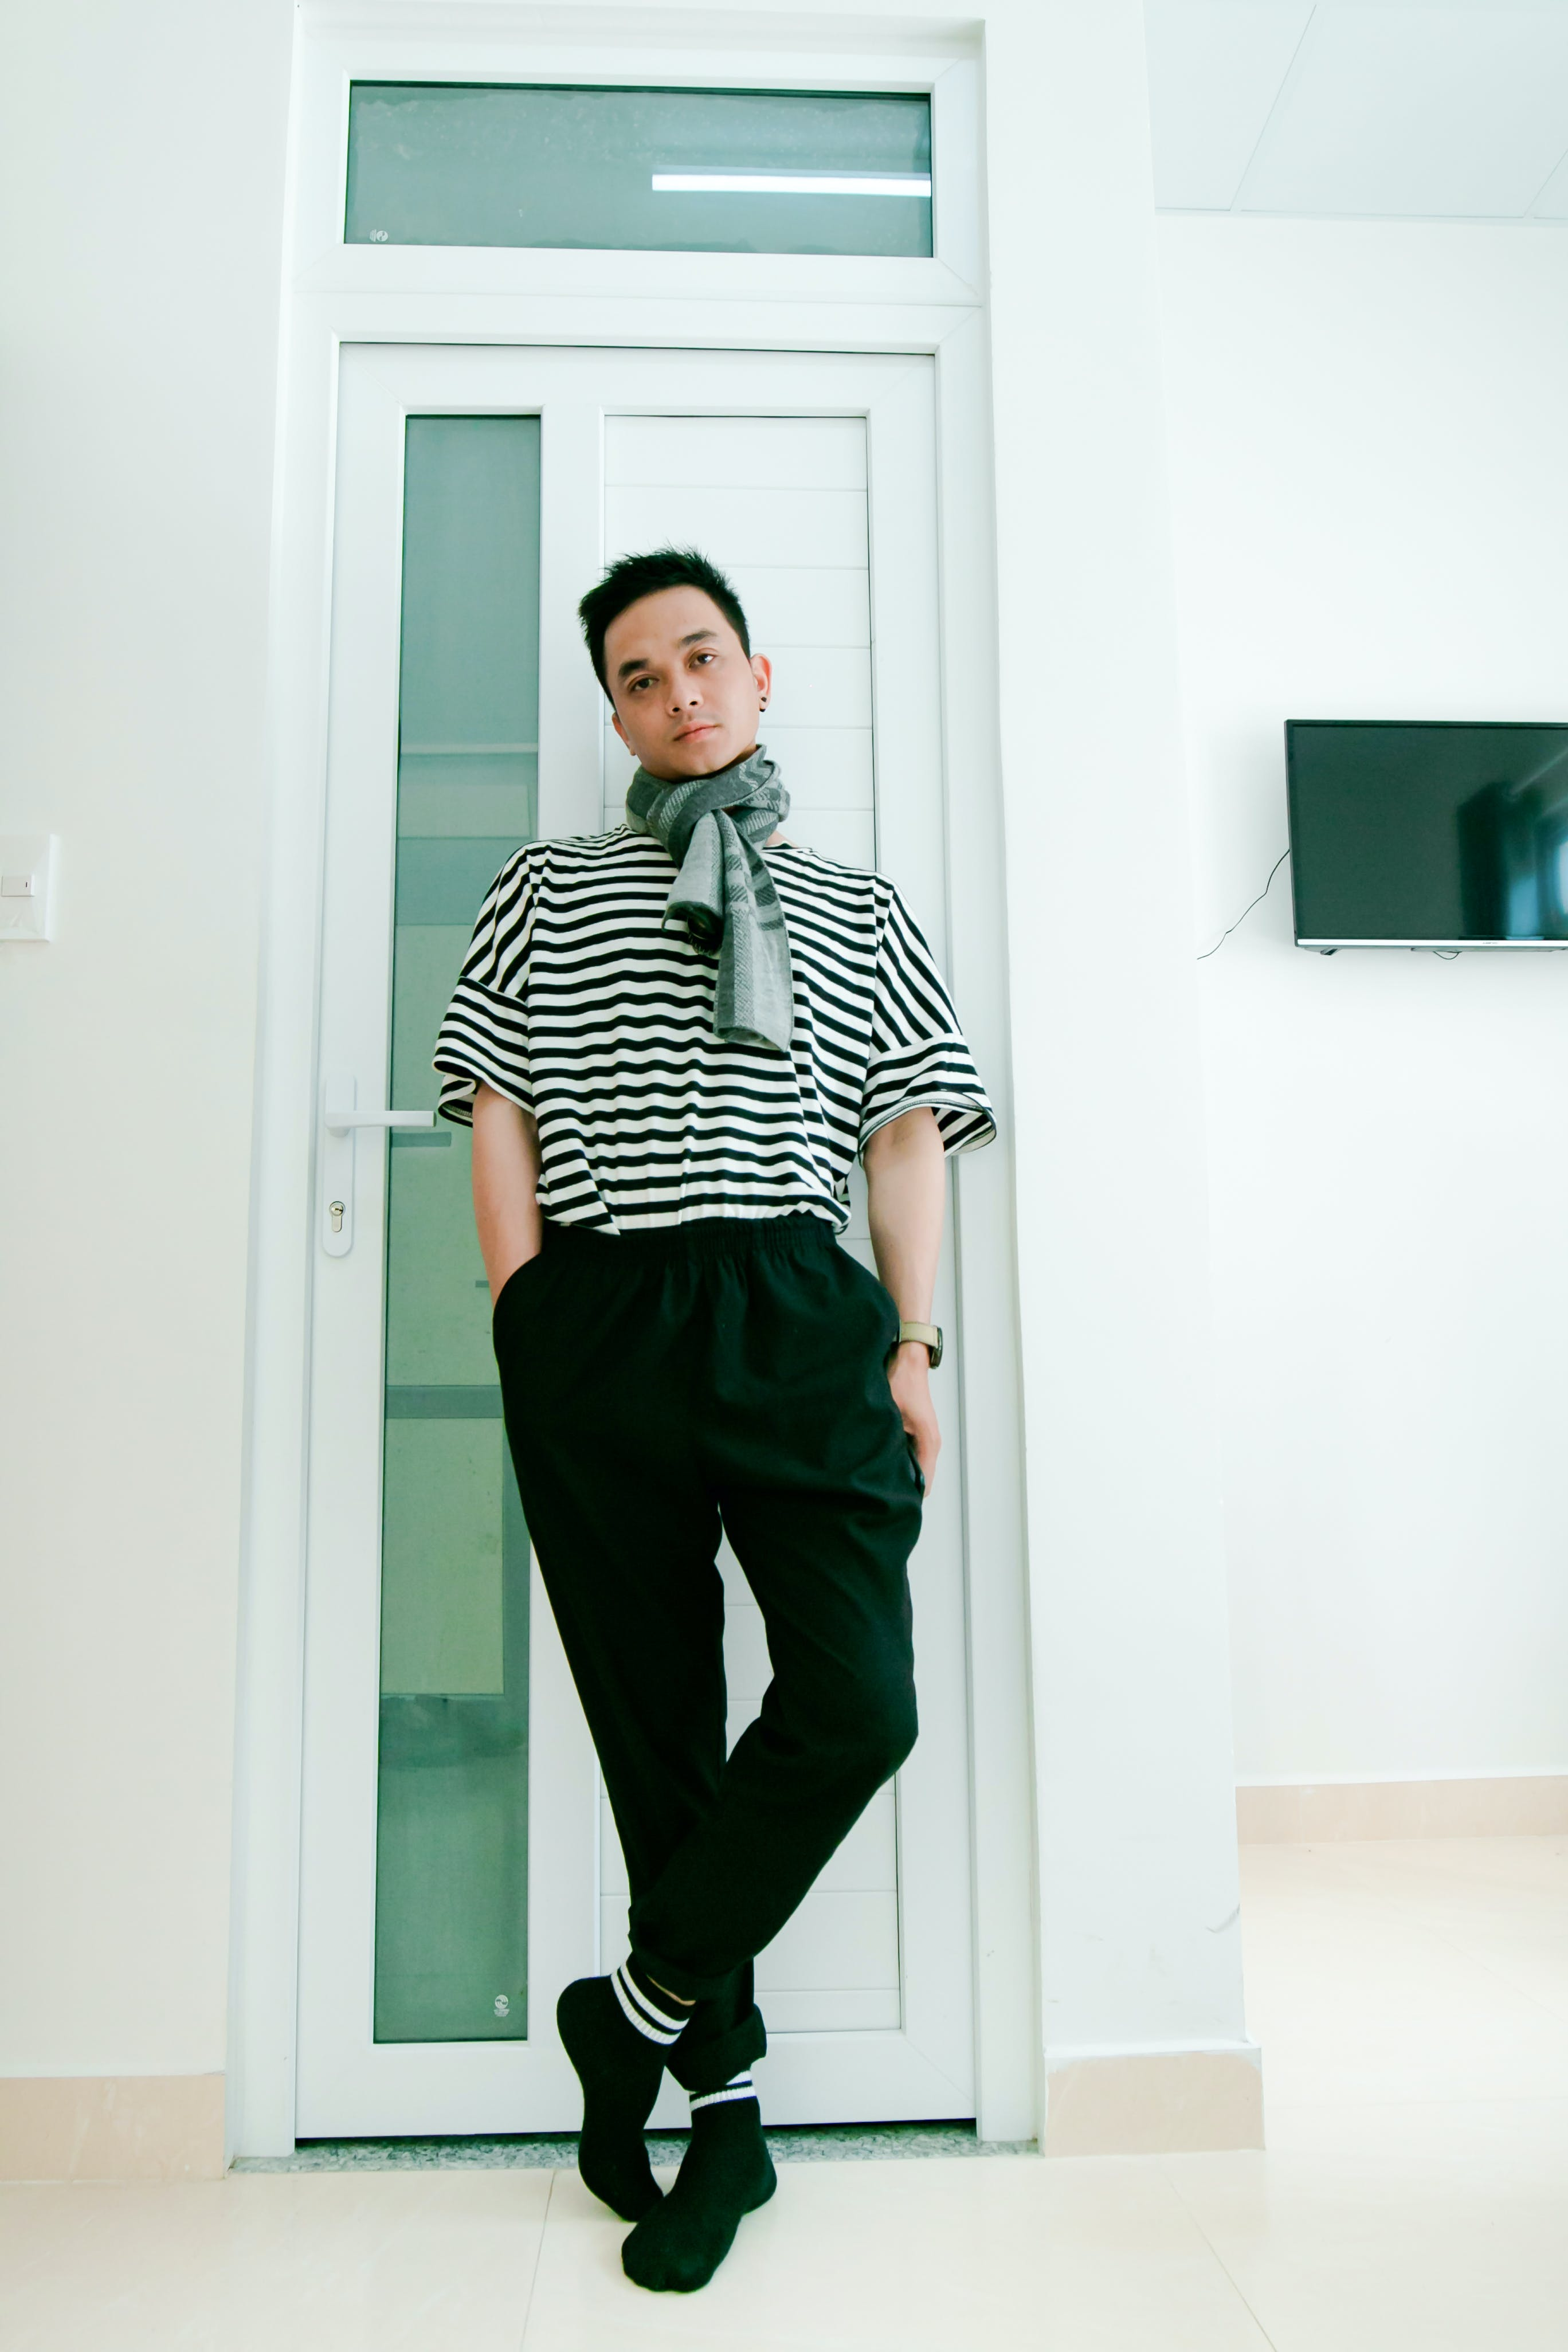 Man in Black and White Striped Shirt Leaning on Door